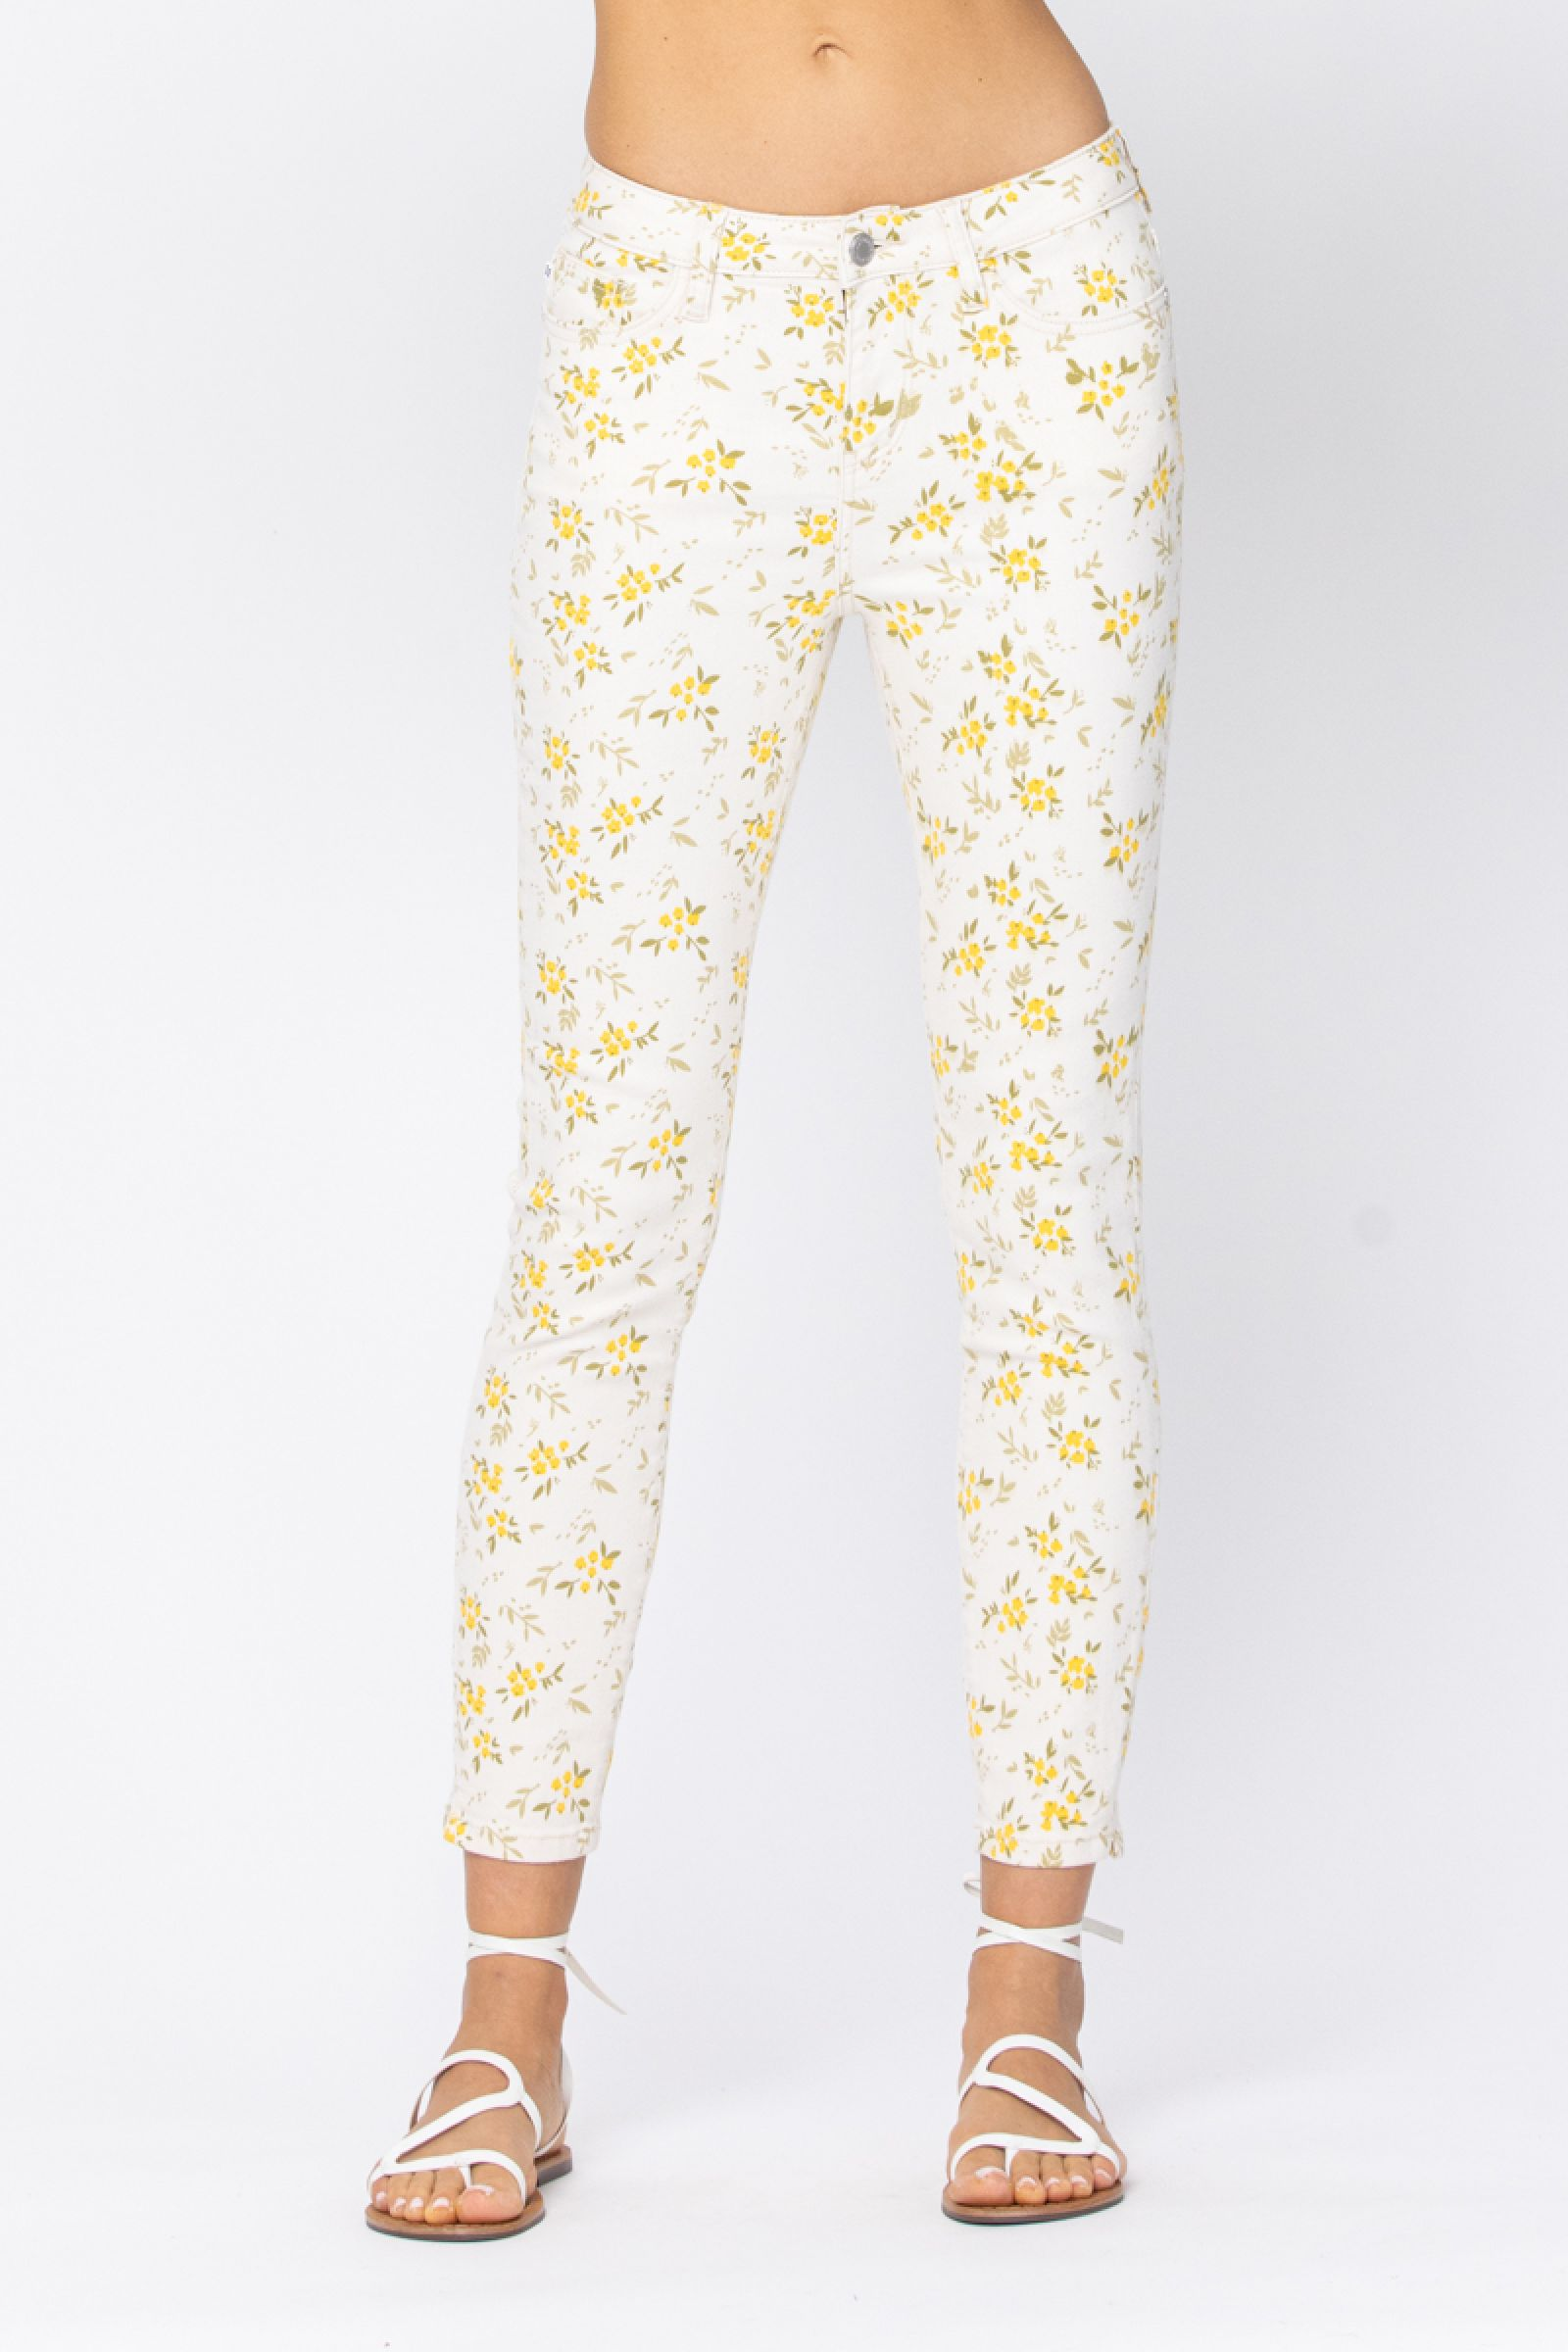 Flower Child Skinny Jeans (Preorder ETA 03/22)